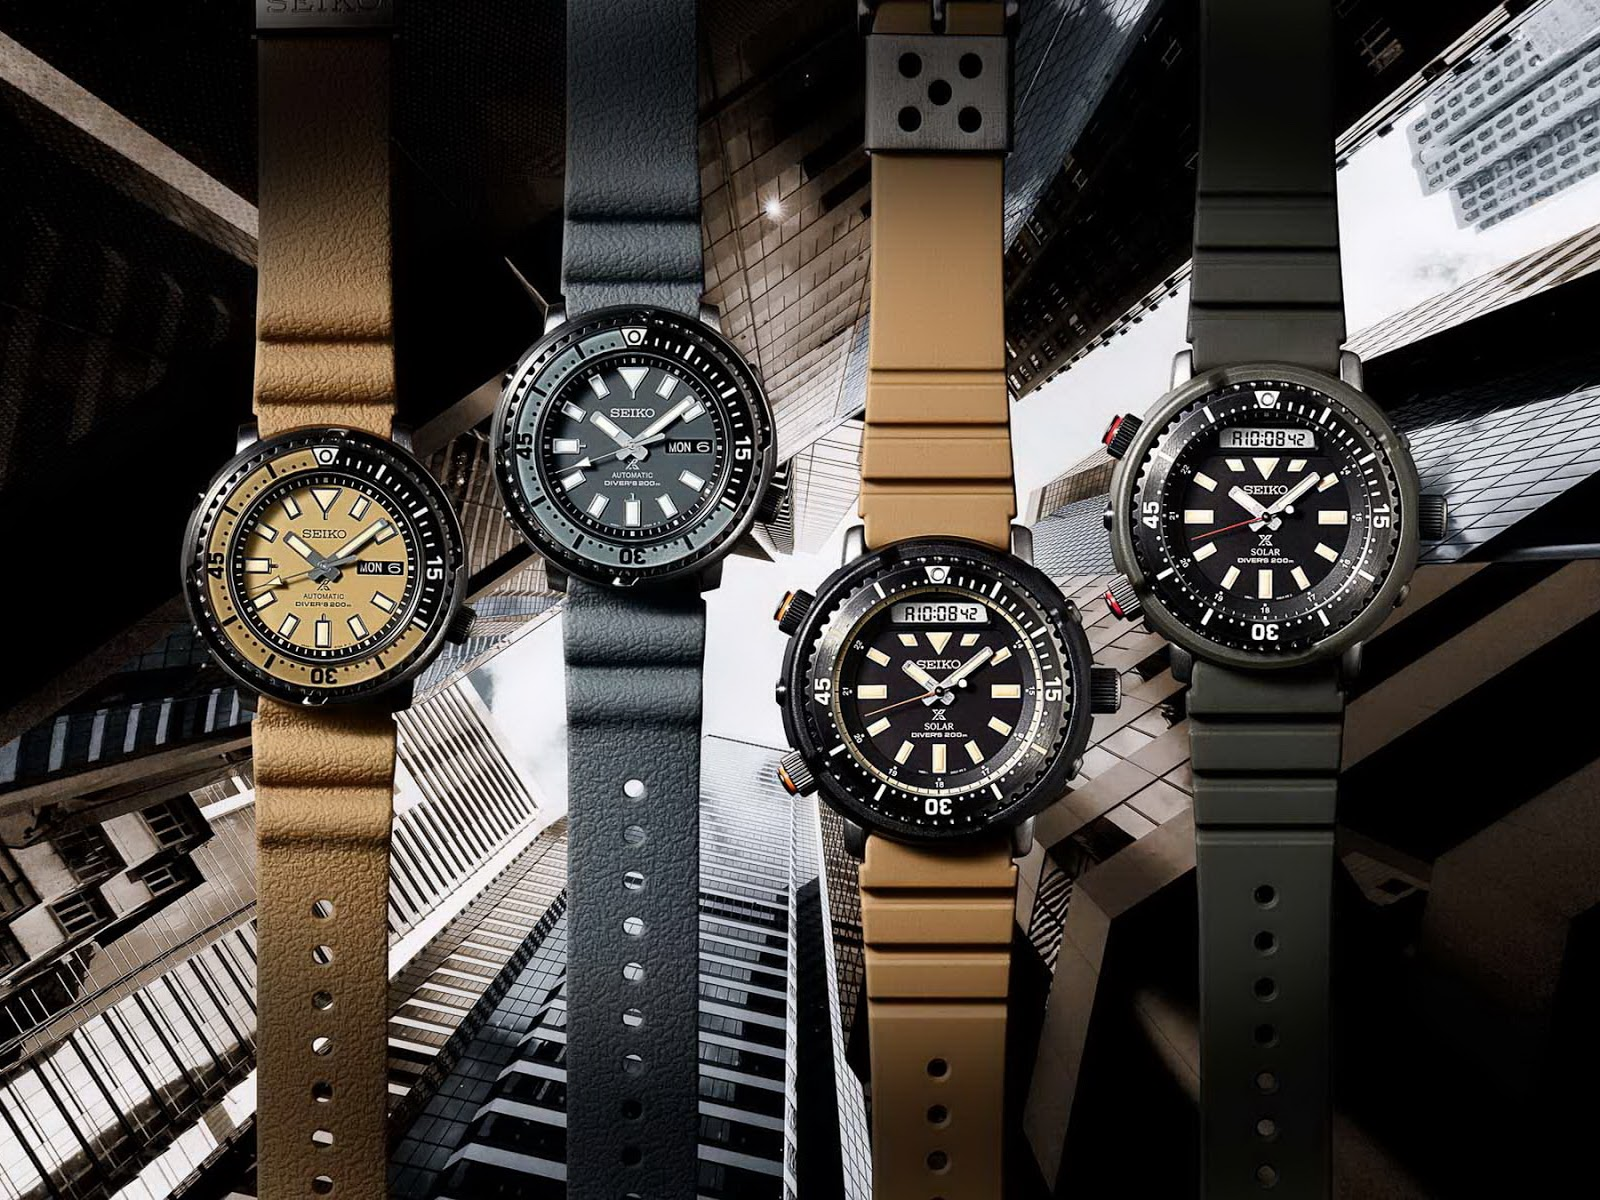 Seiko's new Prospex Urban Safari Capsule Collection SEIKO+Prospex+Diver%27s+URBAN+SAFARI+Capsule+COLLECTION+01